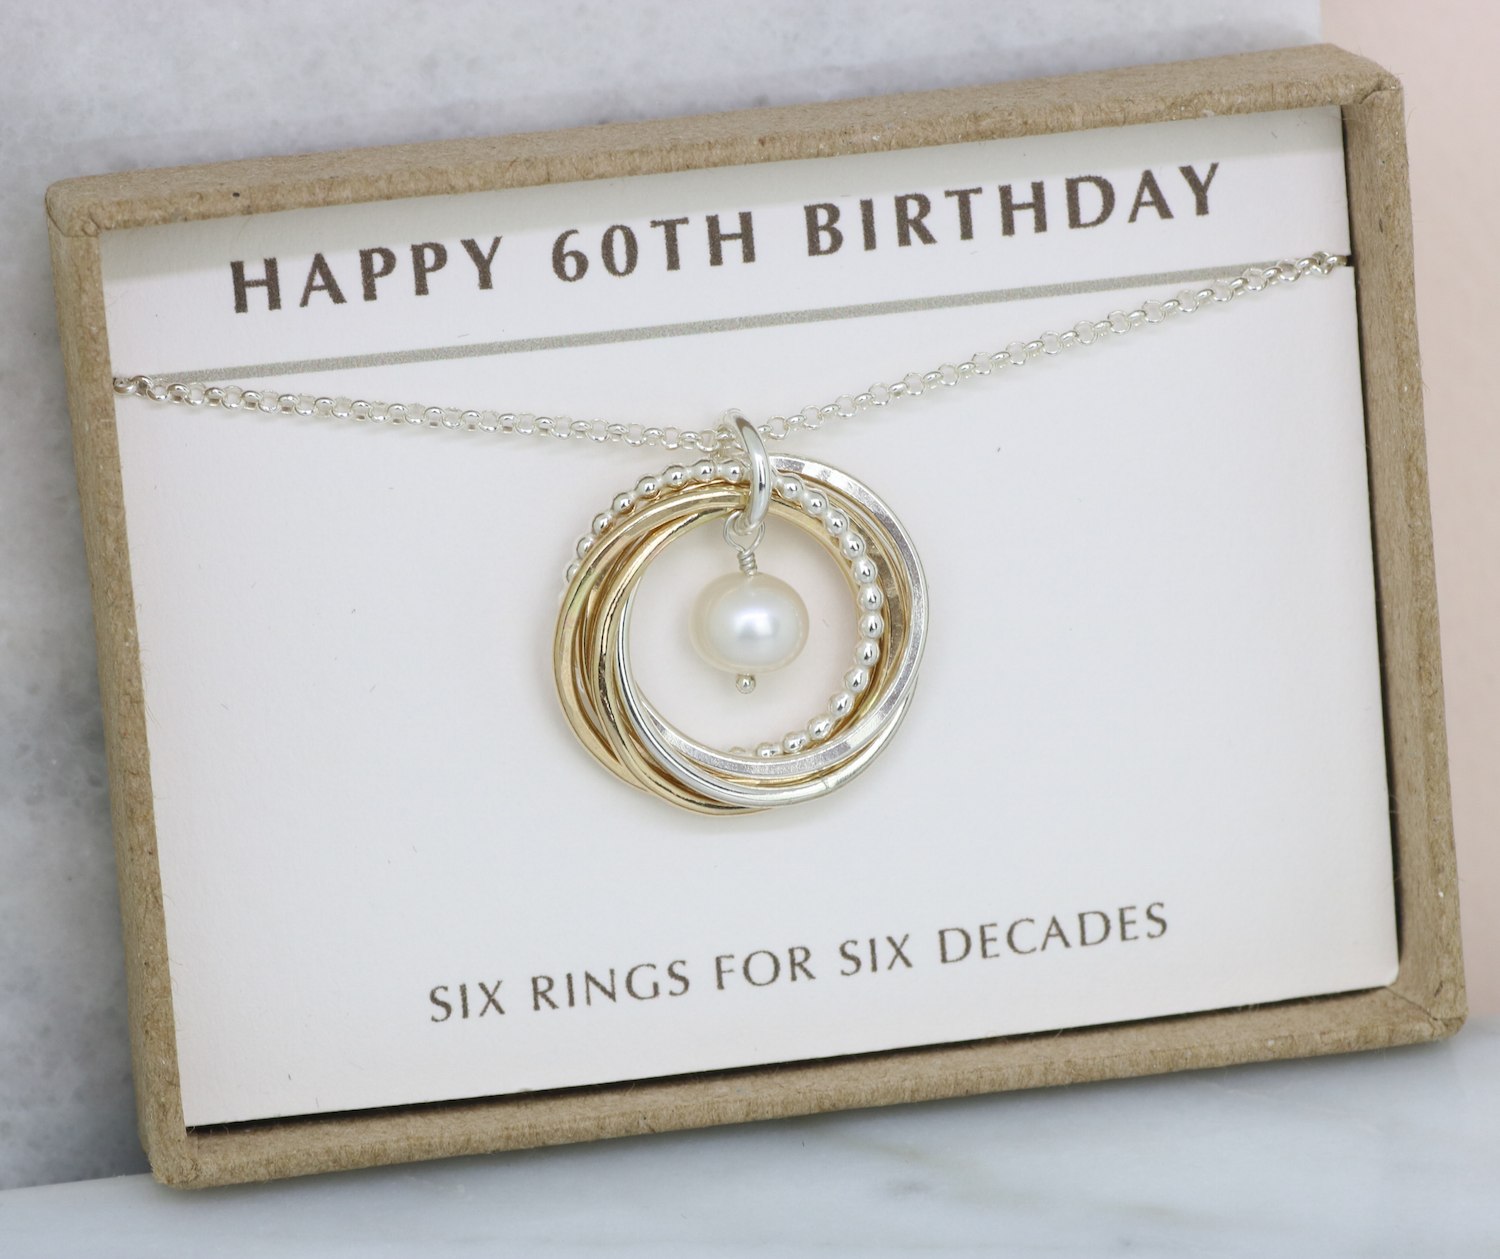 Best 60th Birthday Gifts For Mom From T Idea June Pearl Source Image